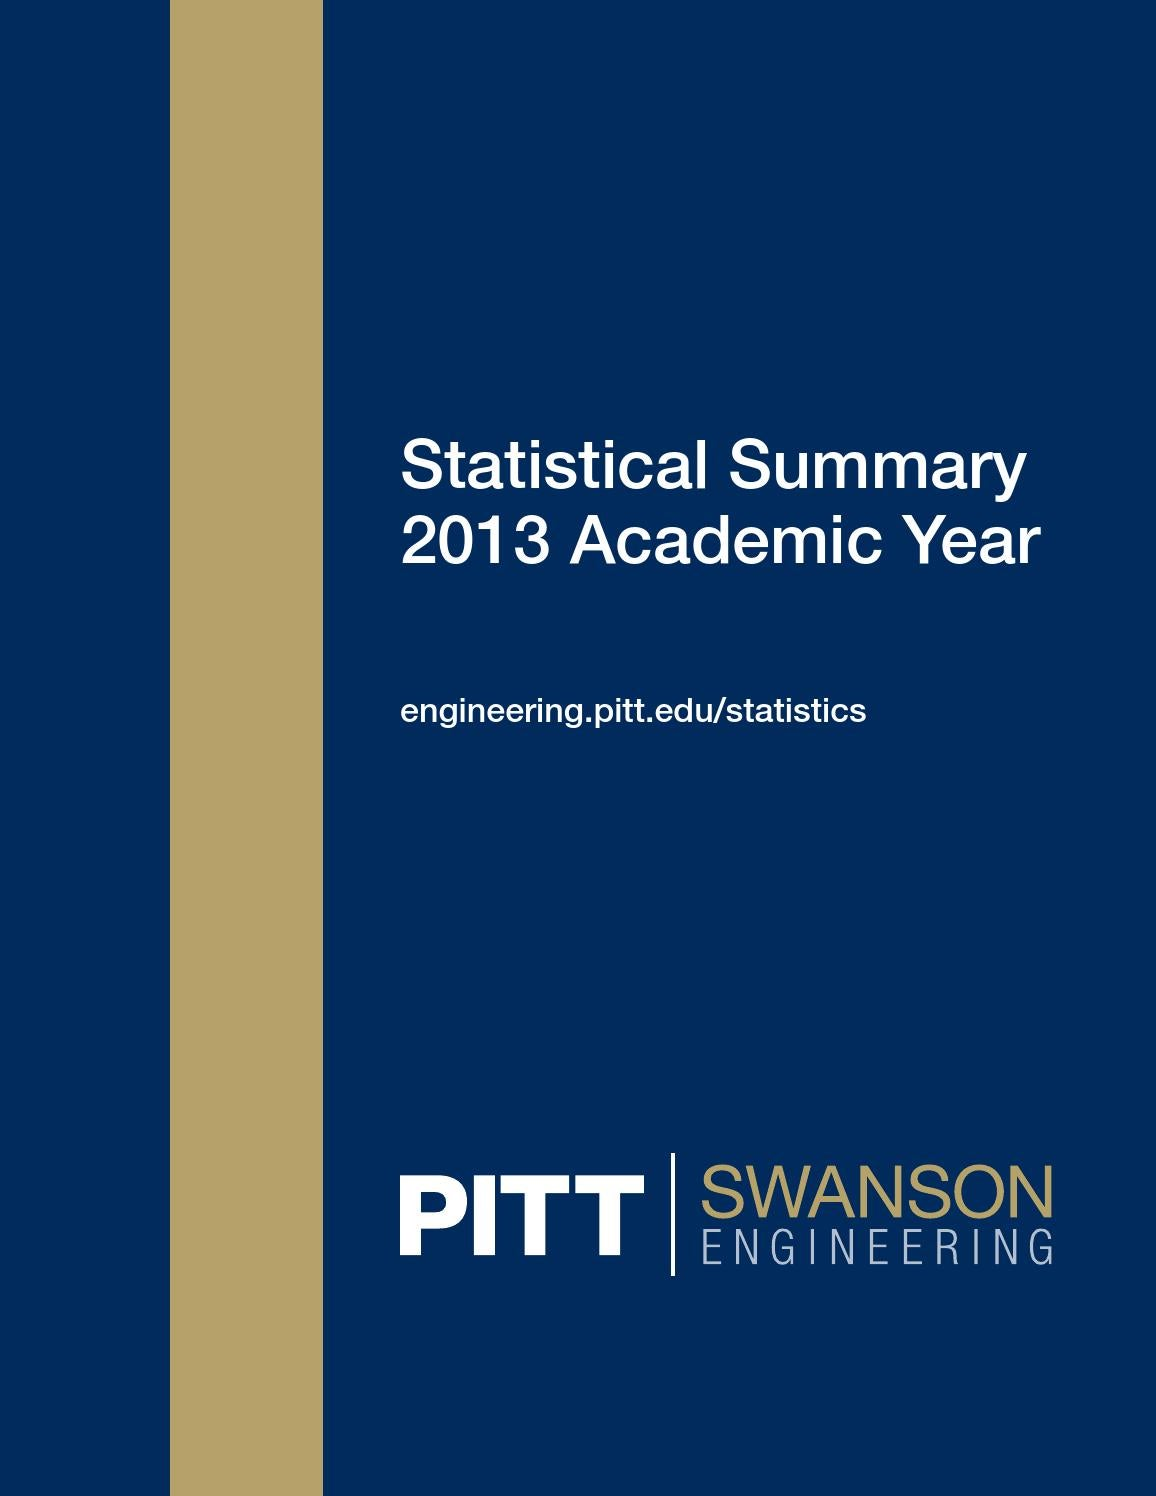 2013 Ssoe Statistical Summary By Pitt Swanson School Of Single Side Copper Clad Laminate Pcb Circuit Board Ccl Alex Nld Engineering Issuu